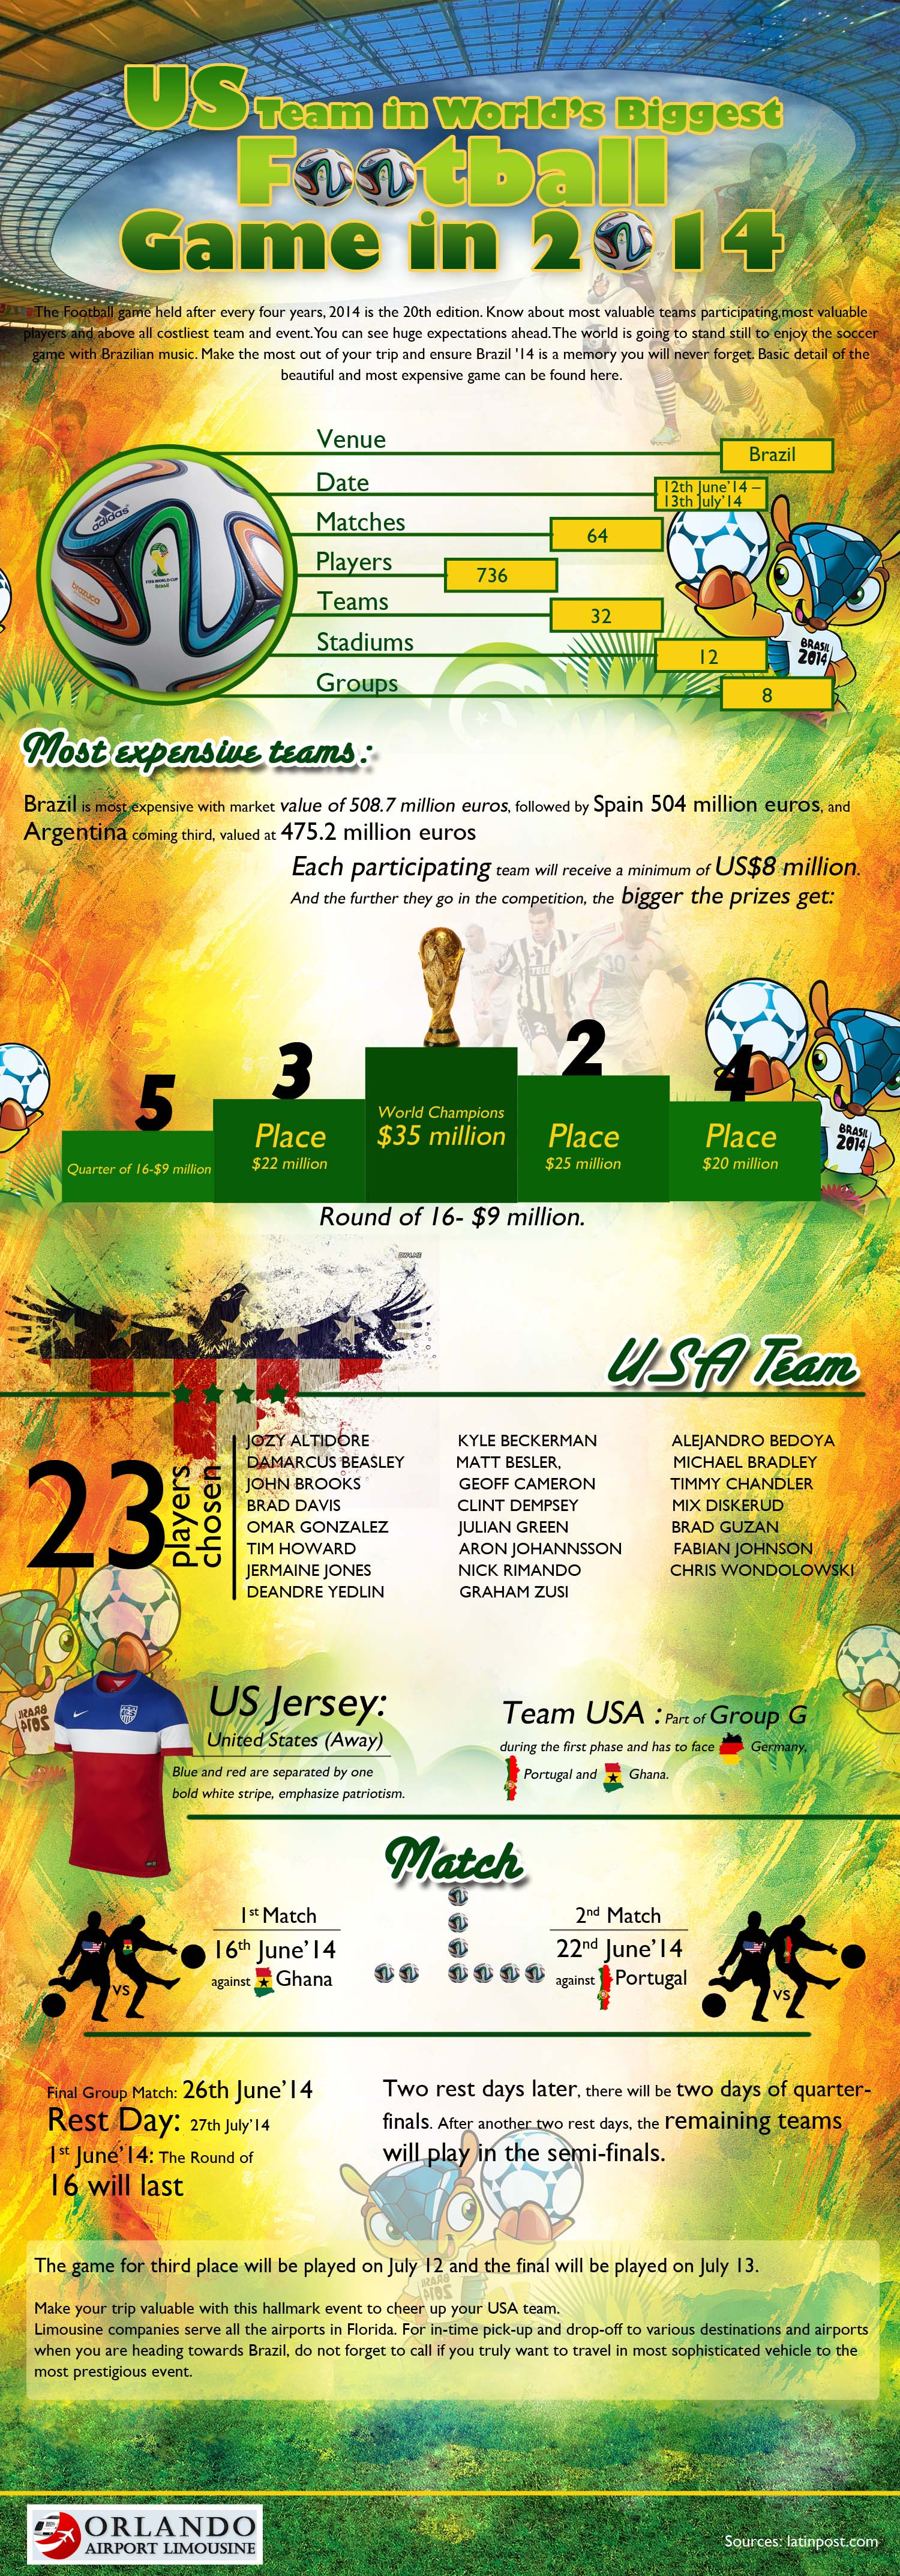 US Team in World's Biggest Football Game in 2014 Infographic